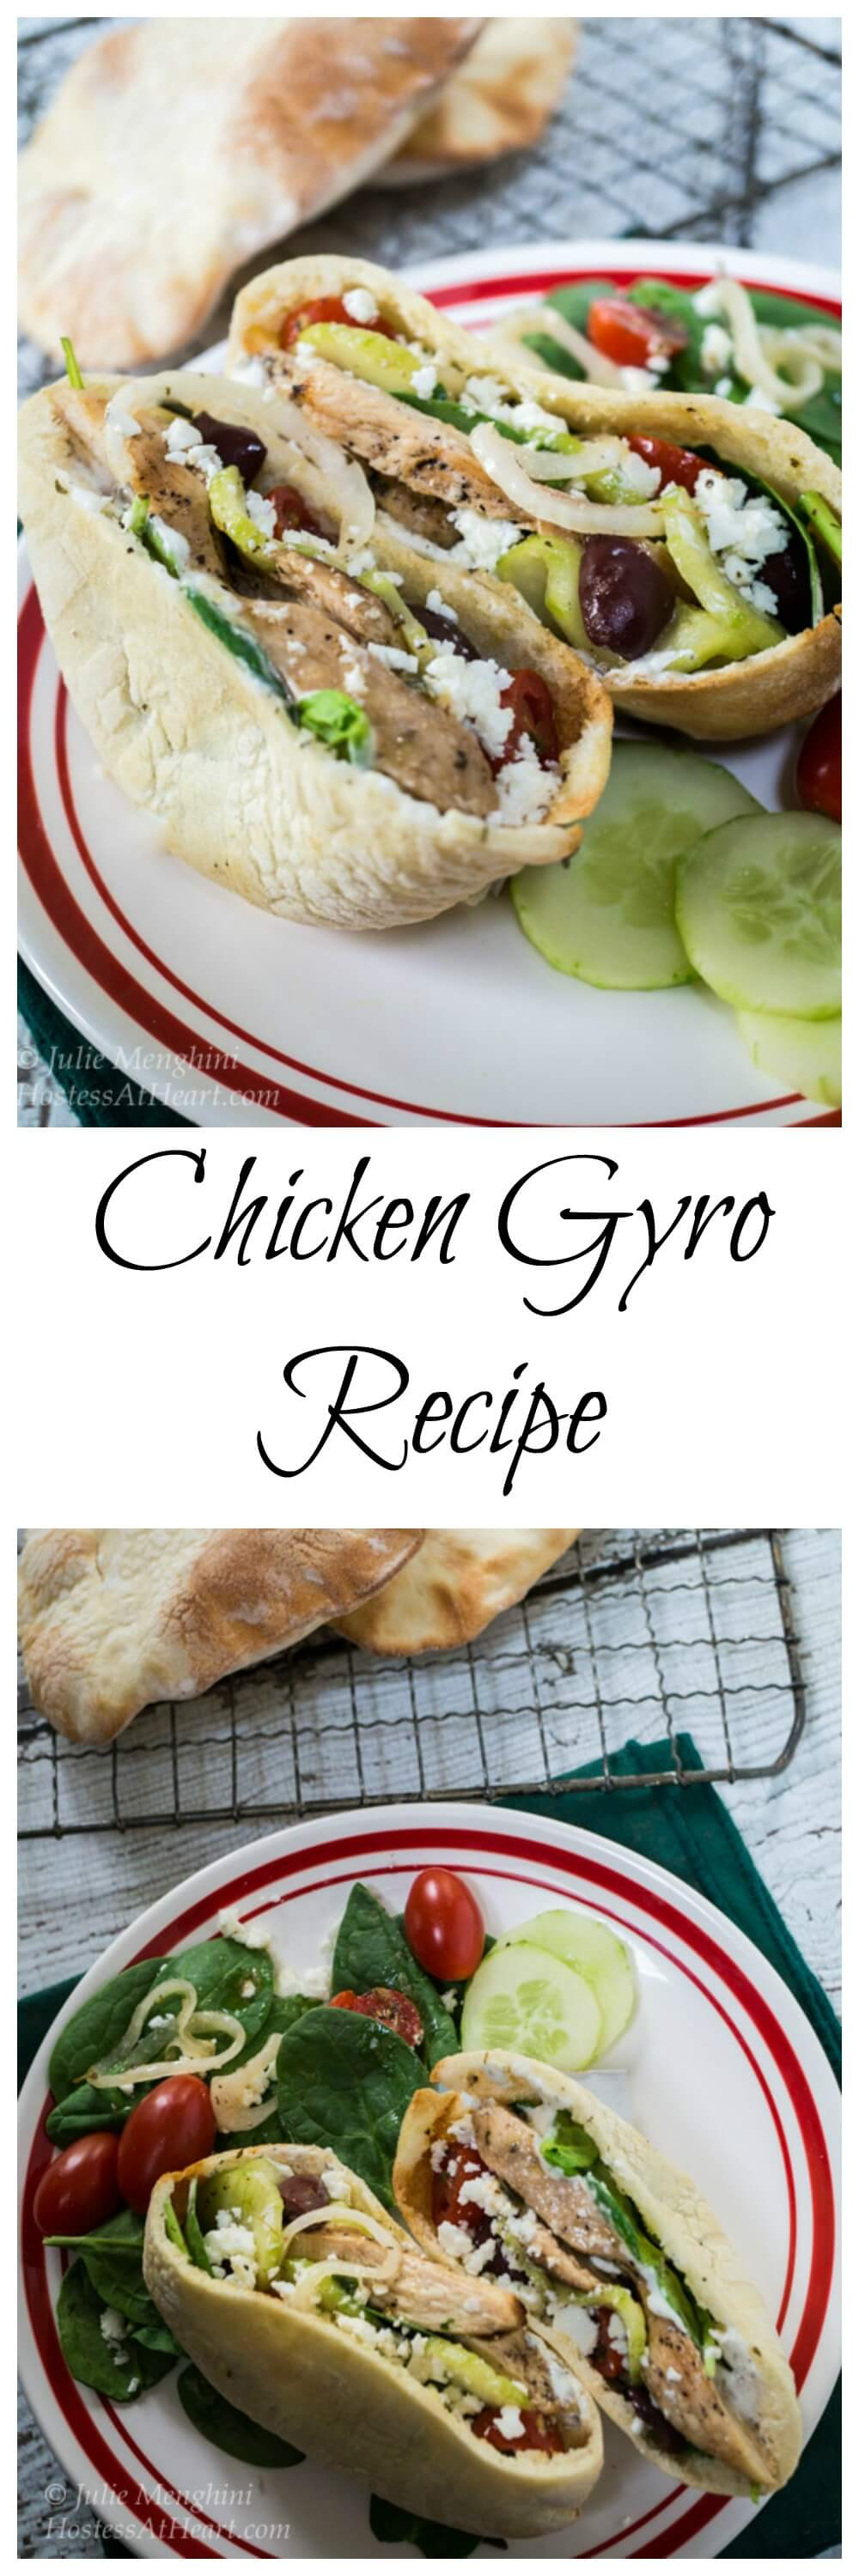 A quick and easy delicious Chicken Gyro recipe. You can either stuff the ingredients into a pita or make a healthy Greek salad. Gyros make a great lunch or dinner! #Chickendinner, #easyrecipes. #chickenrecipes, #Chicken #Healthy